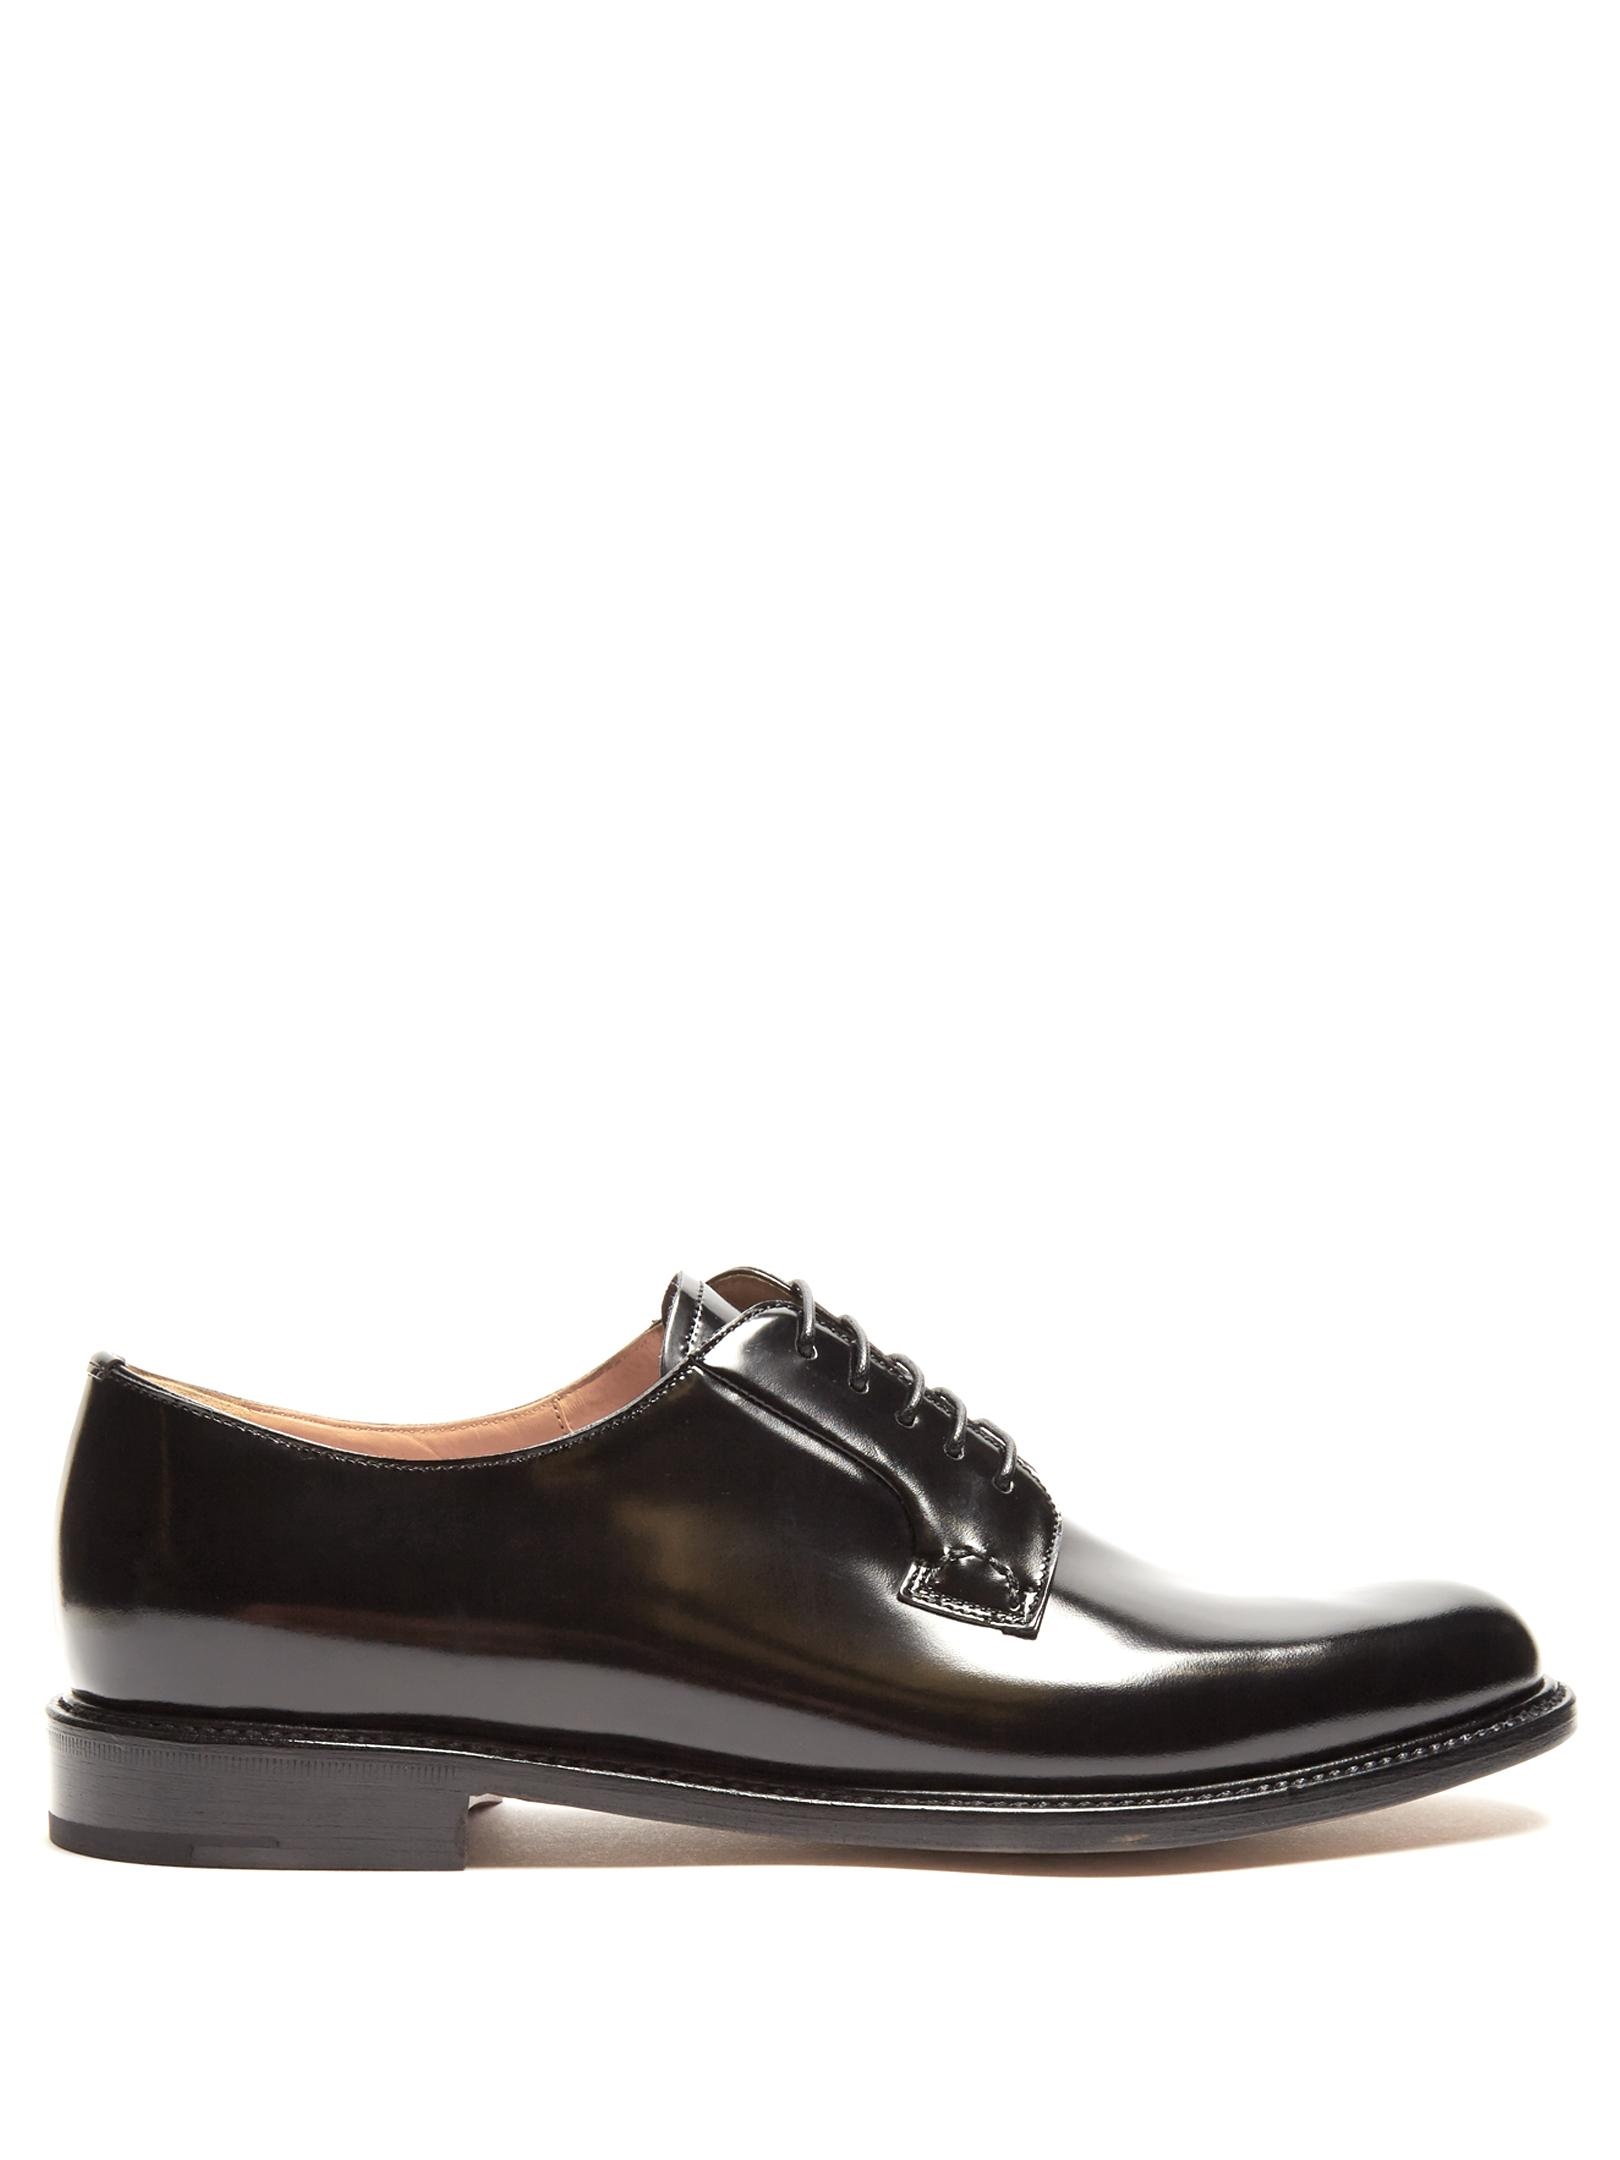 church s shannon lace up leather derby shoes in black lyst